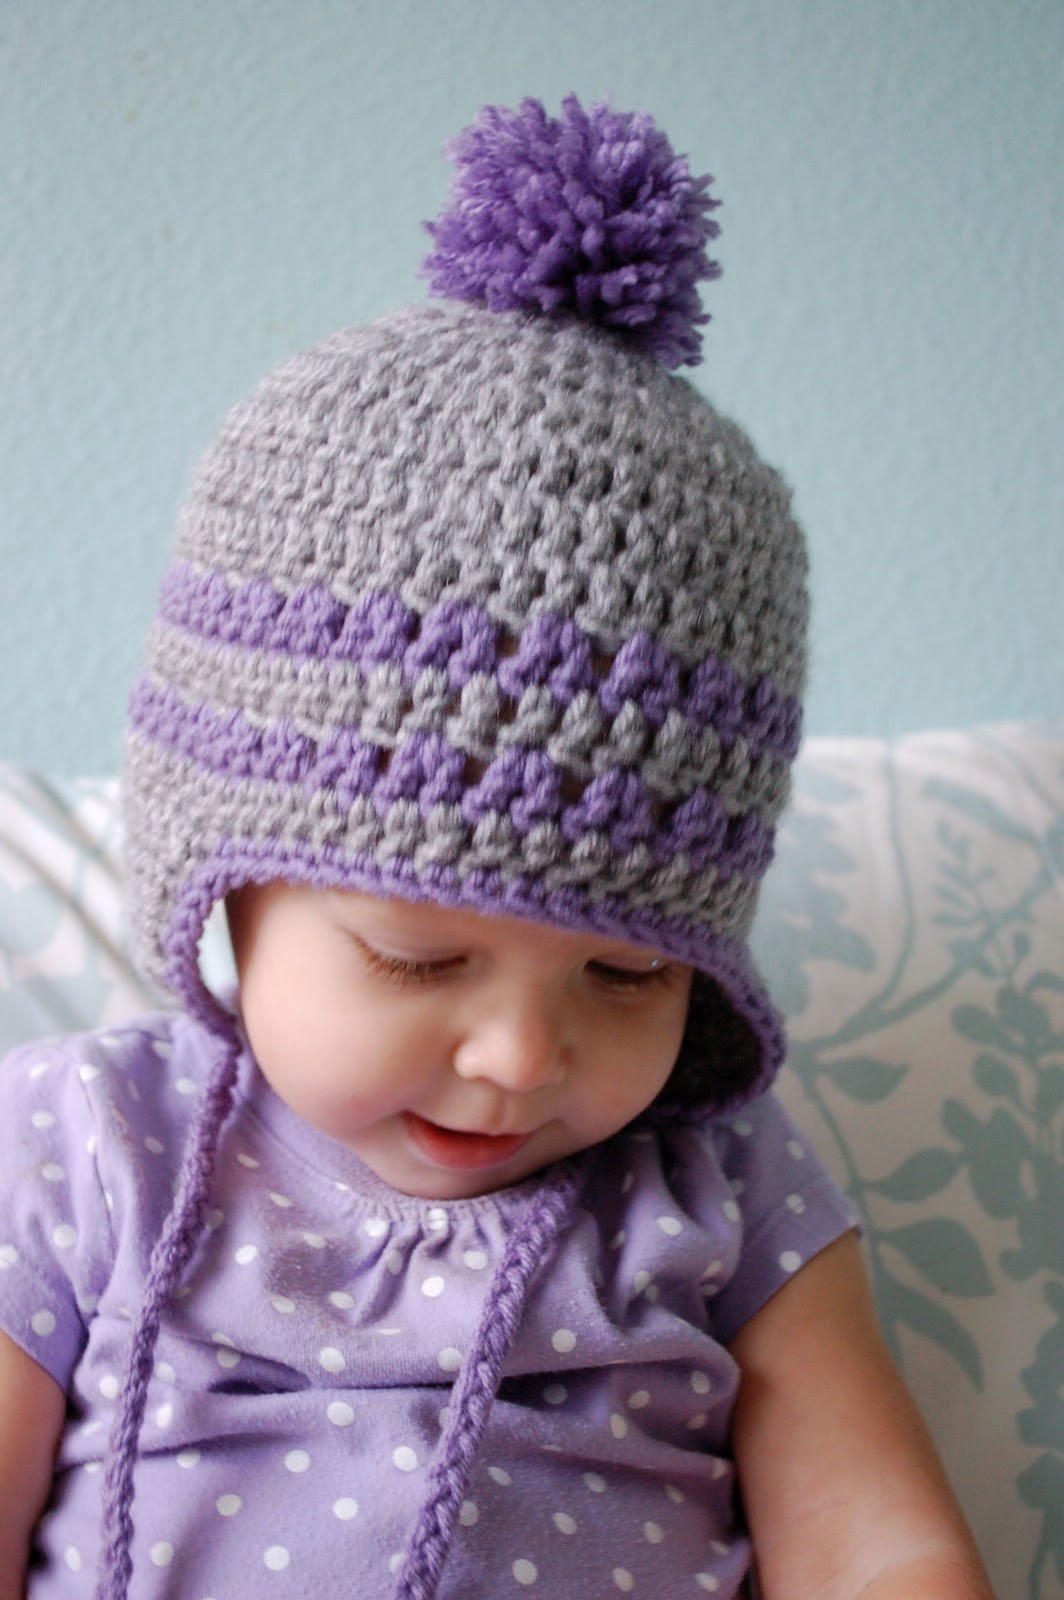 New Single Crochet Earflap Hat Pattern Crochet toddler Hat Pattern Of Delightful 40 Ideas Crochet toddler Hat Pattern